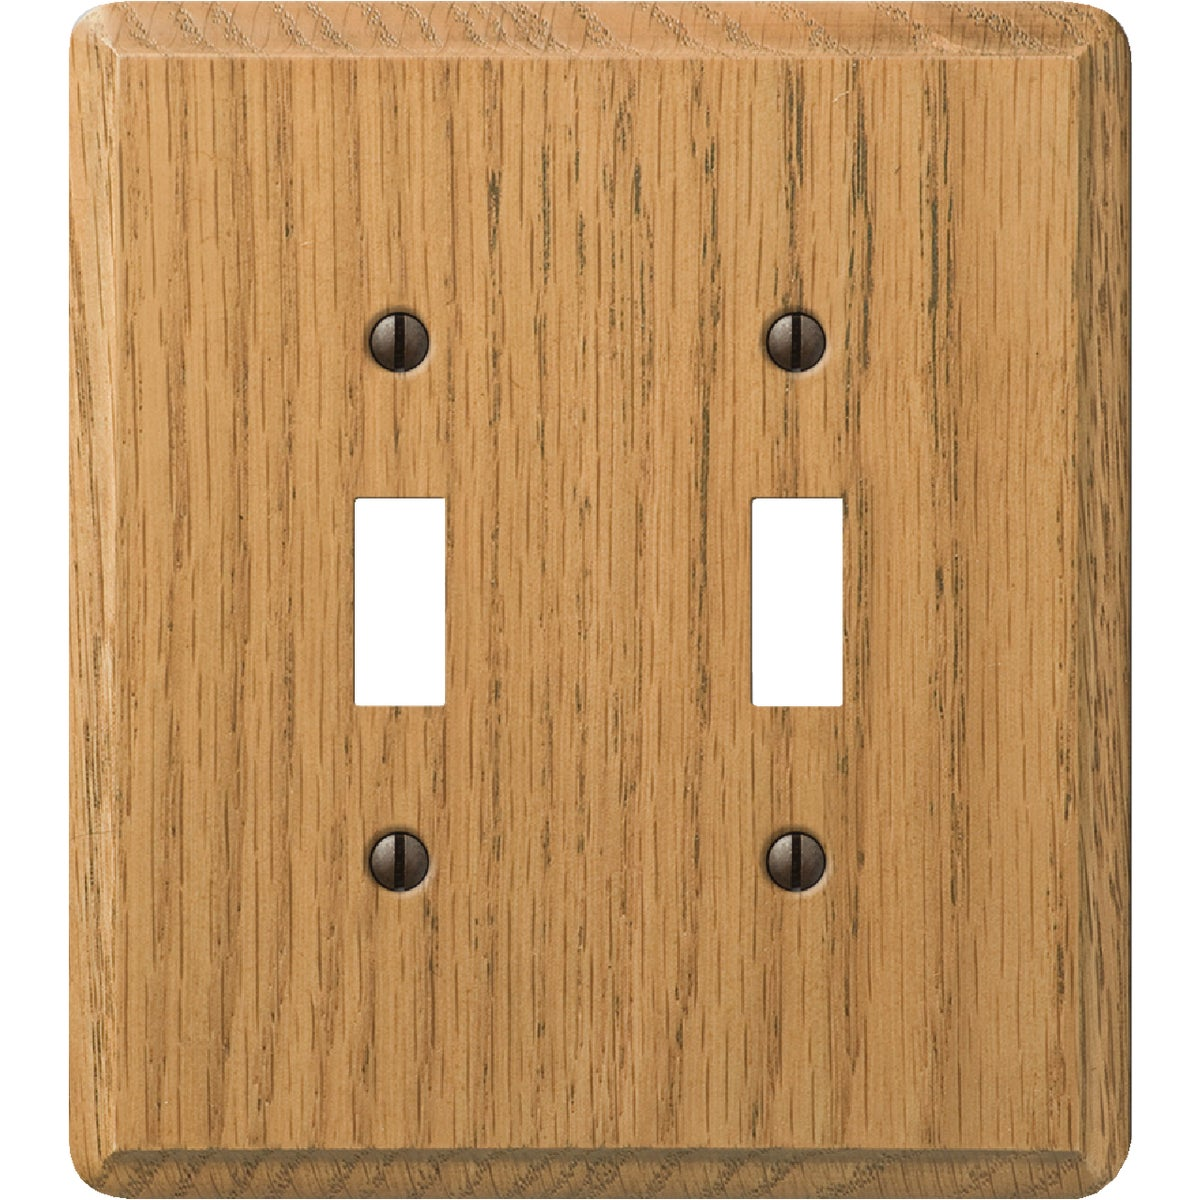 OAK 2-TOGGLE WALL PLATE